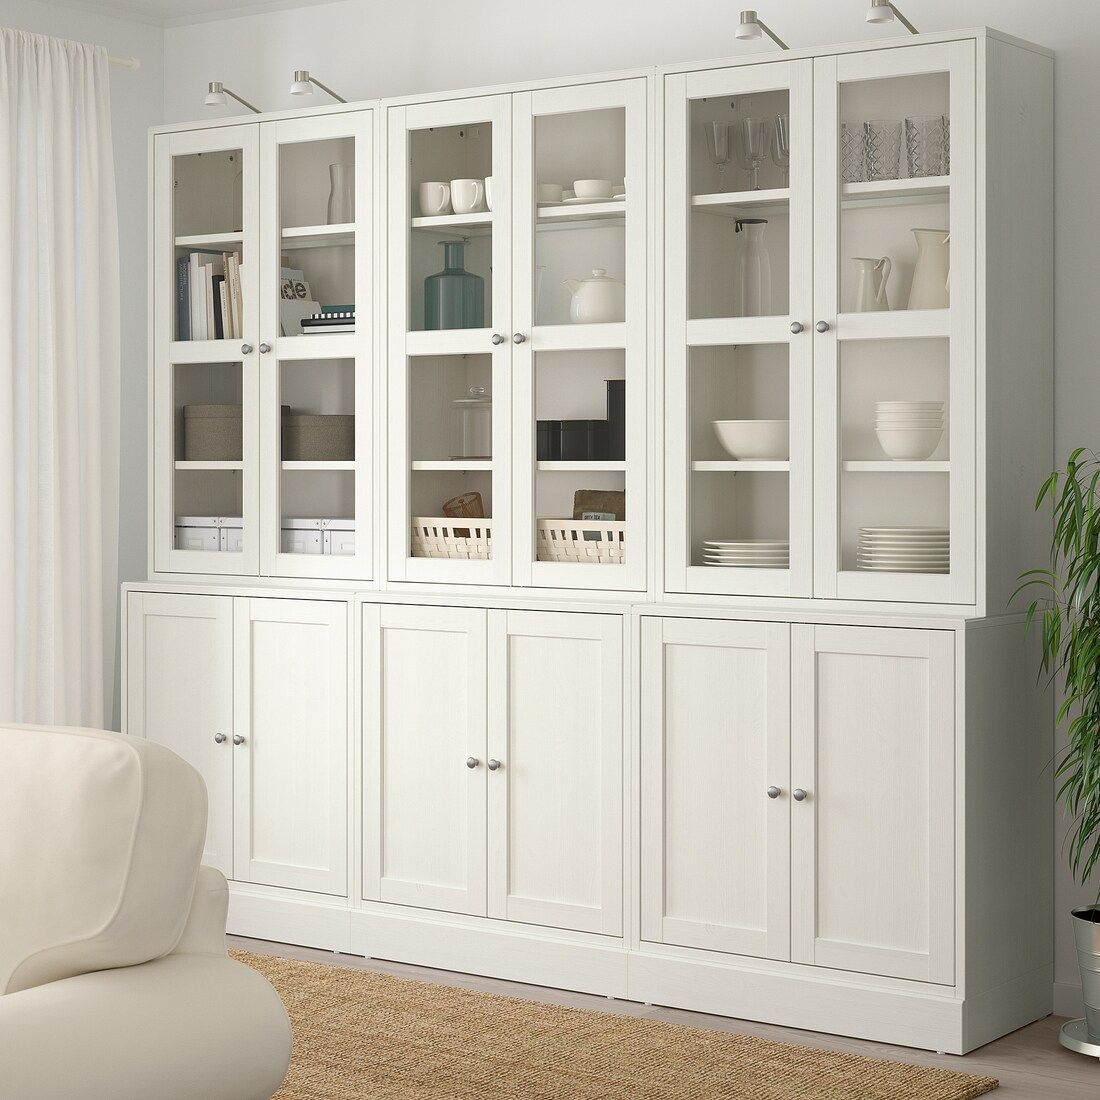 Havsta Storage Combination W Glass Doors White 95 5 8x18 1 2x83